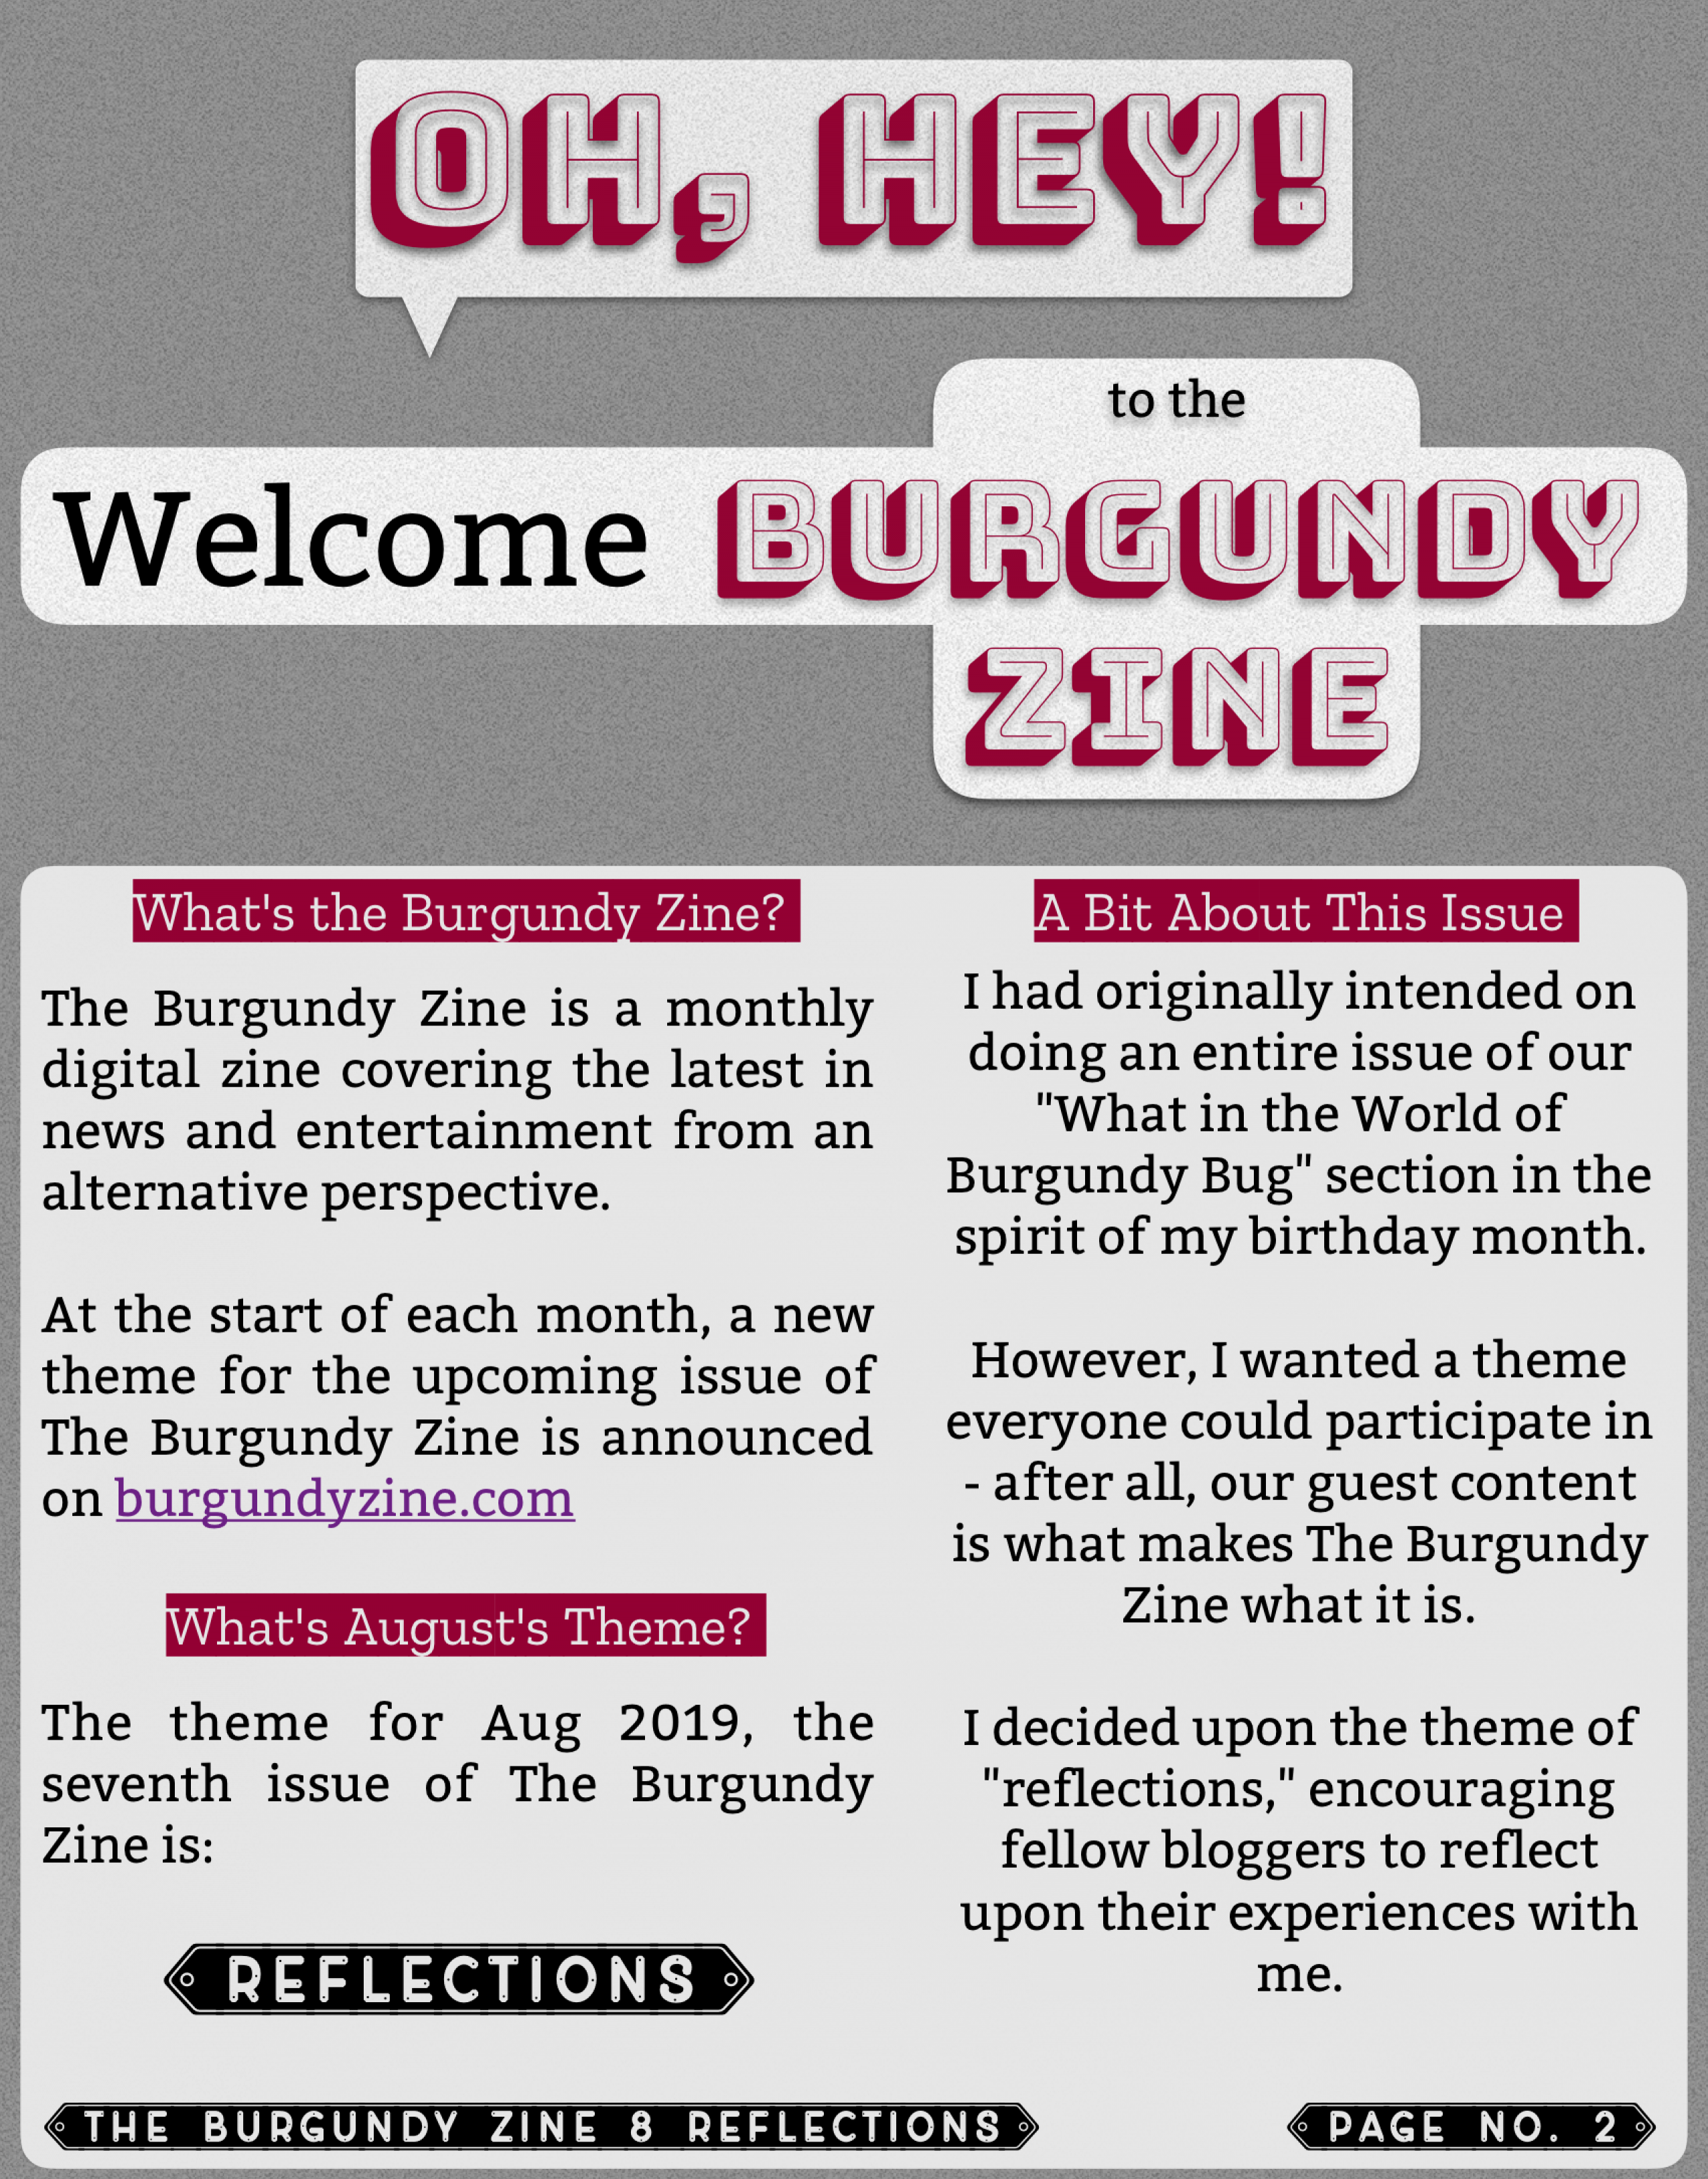 The Burgundy Zine #8 Reflections 002